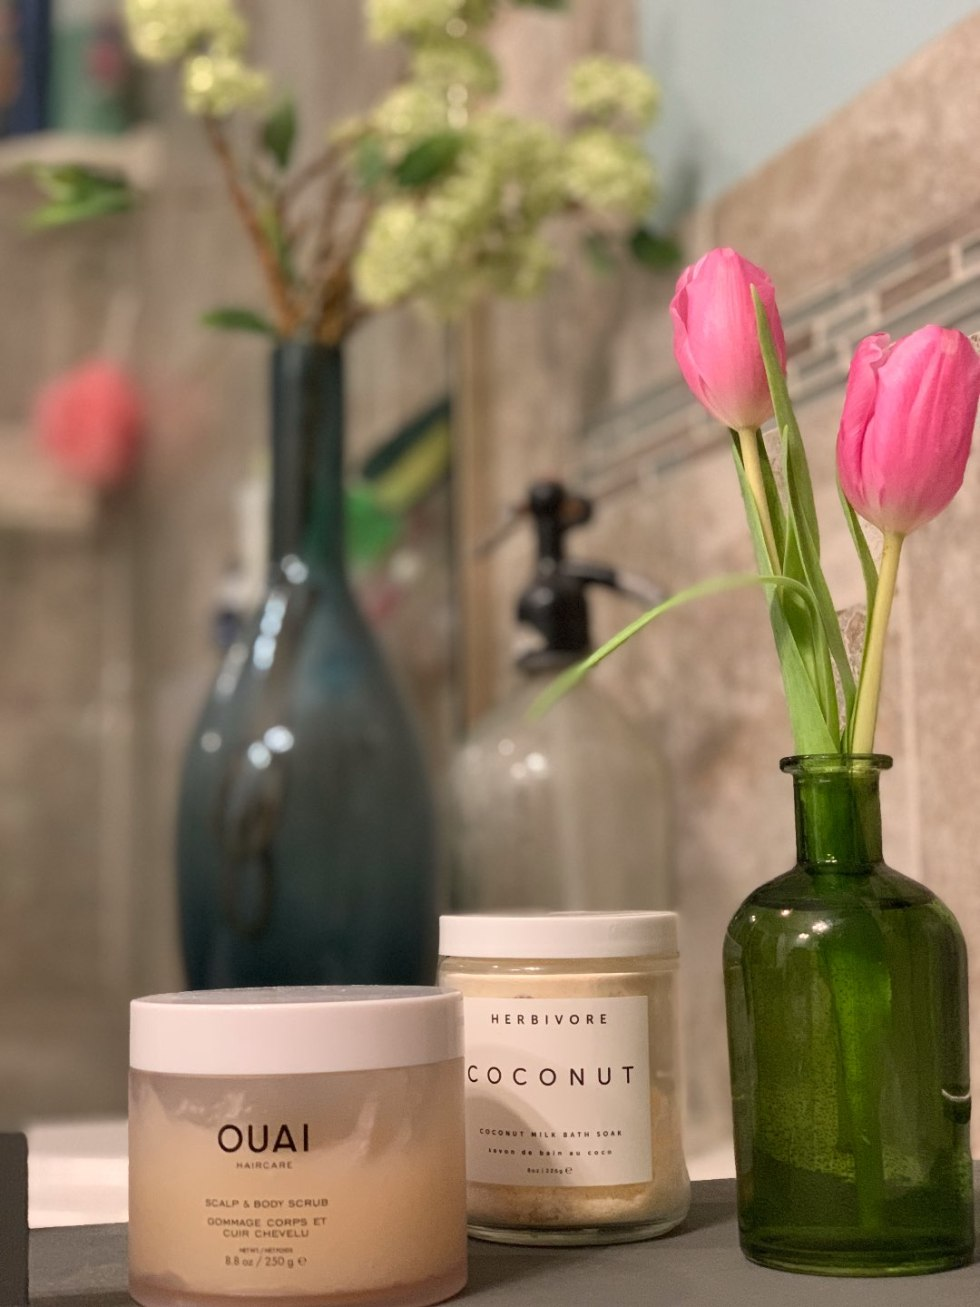 Self Care for Valentine's Day - I'm Fixin' To - @mbg0112 | Love yourself on Valentine's Day by popular NC life and style blog, I'm Fixin To: image of Ouai scalp and body scrub and Herbivore coconut milk bath soak.